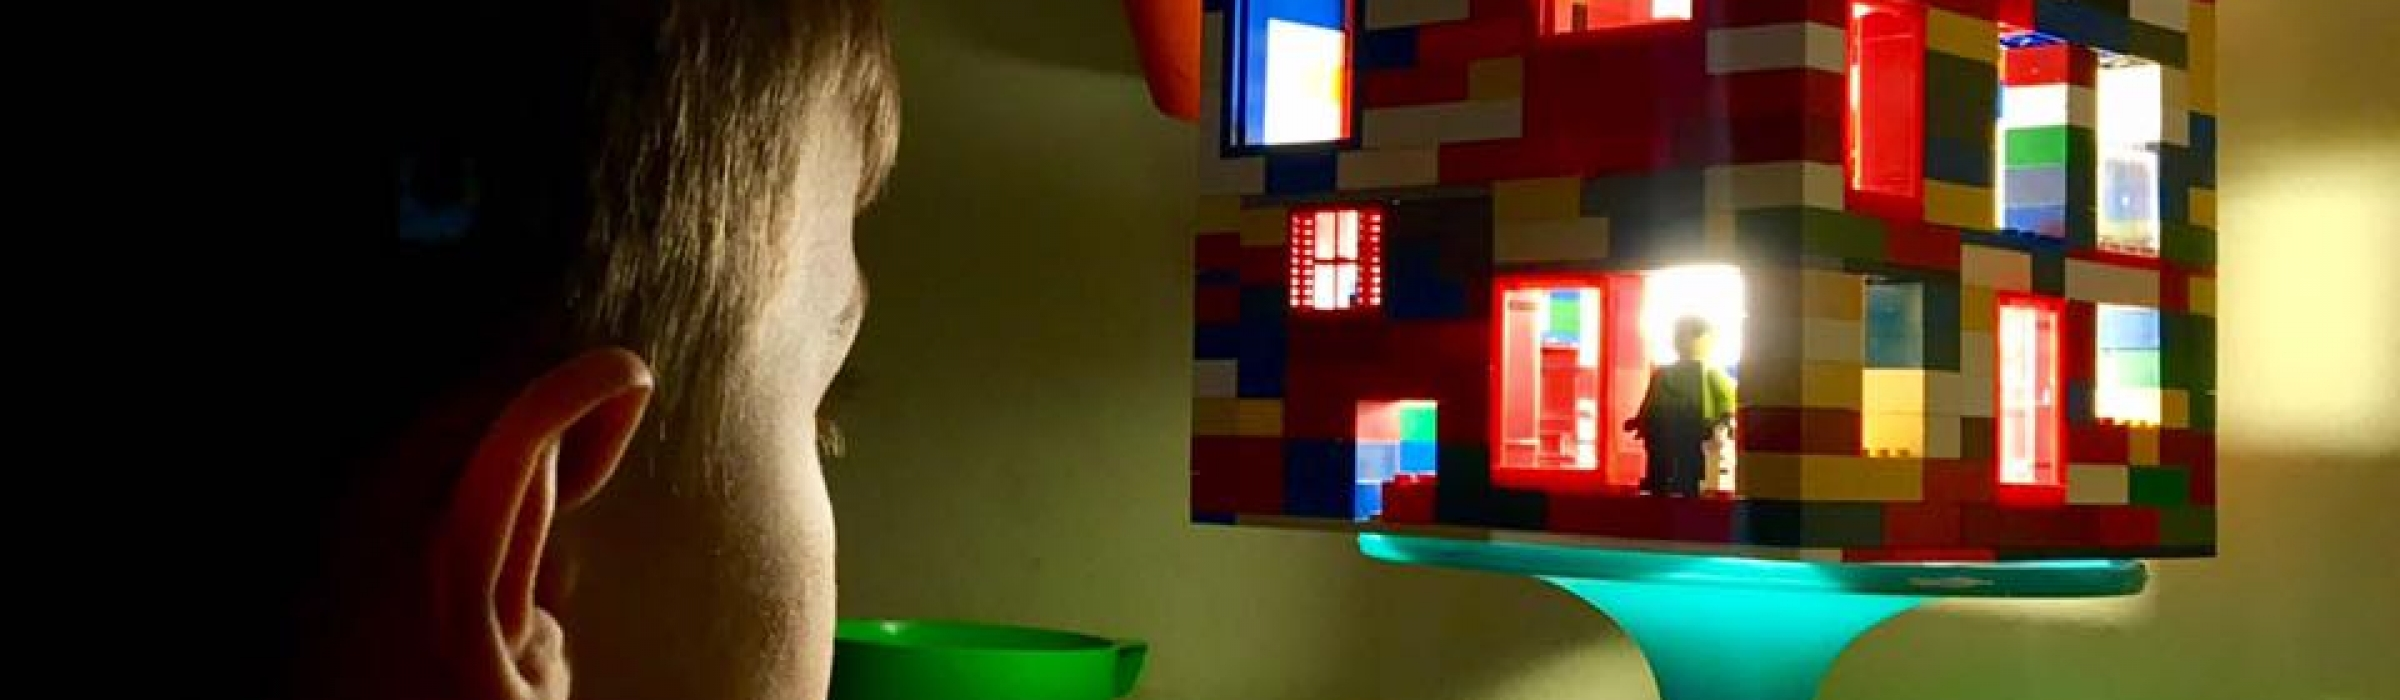 LEGO Lamp Night Light